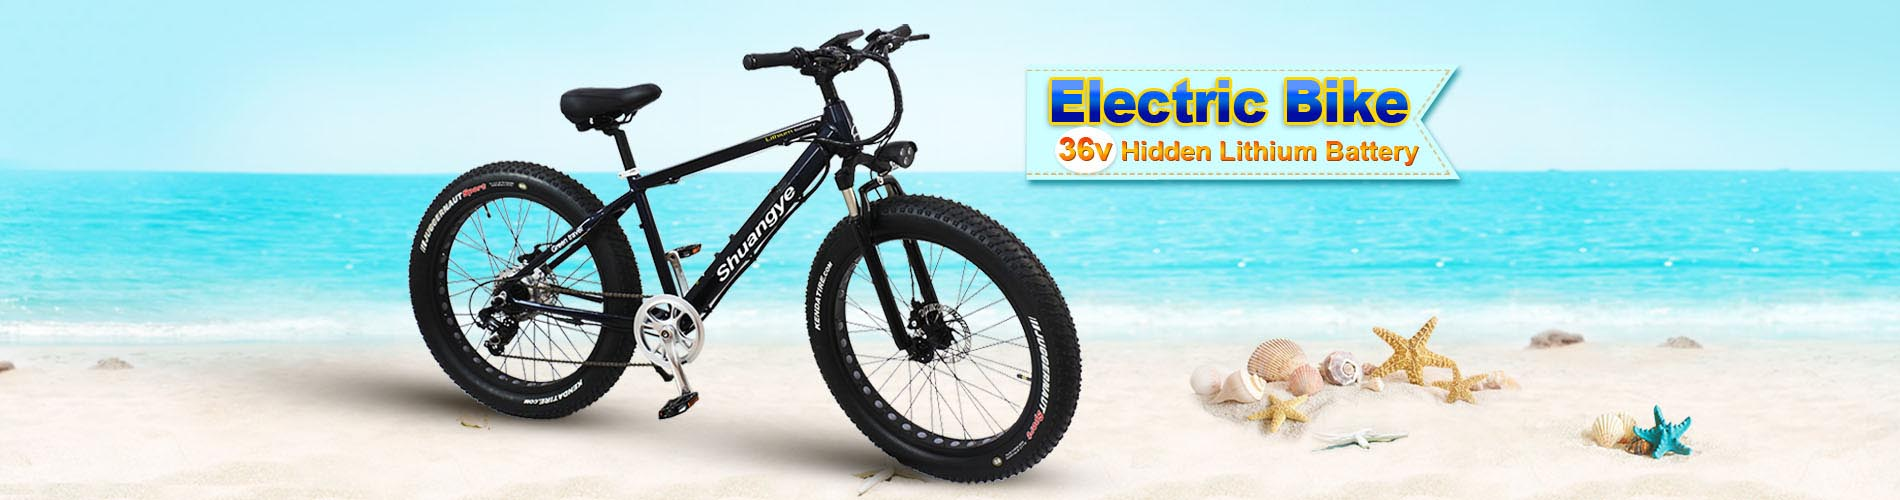 Electronic foldable bike with one-piece wheels